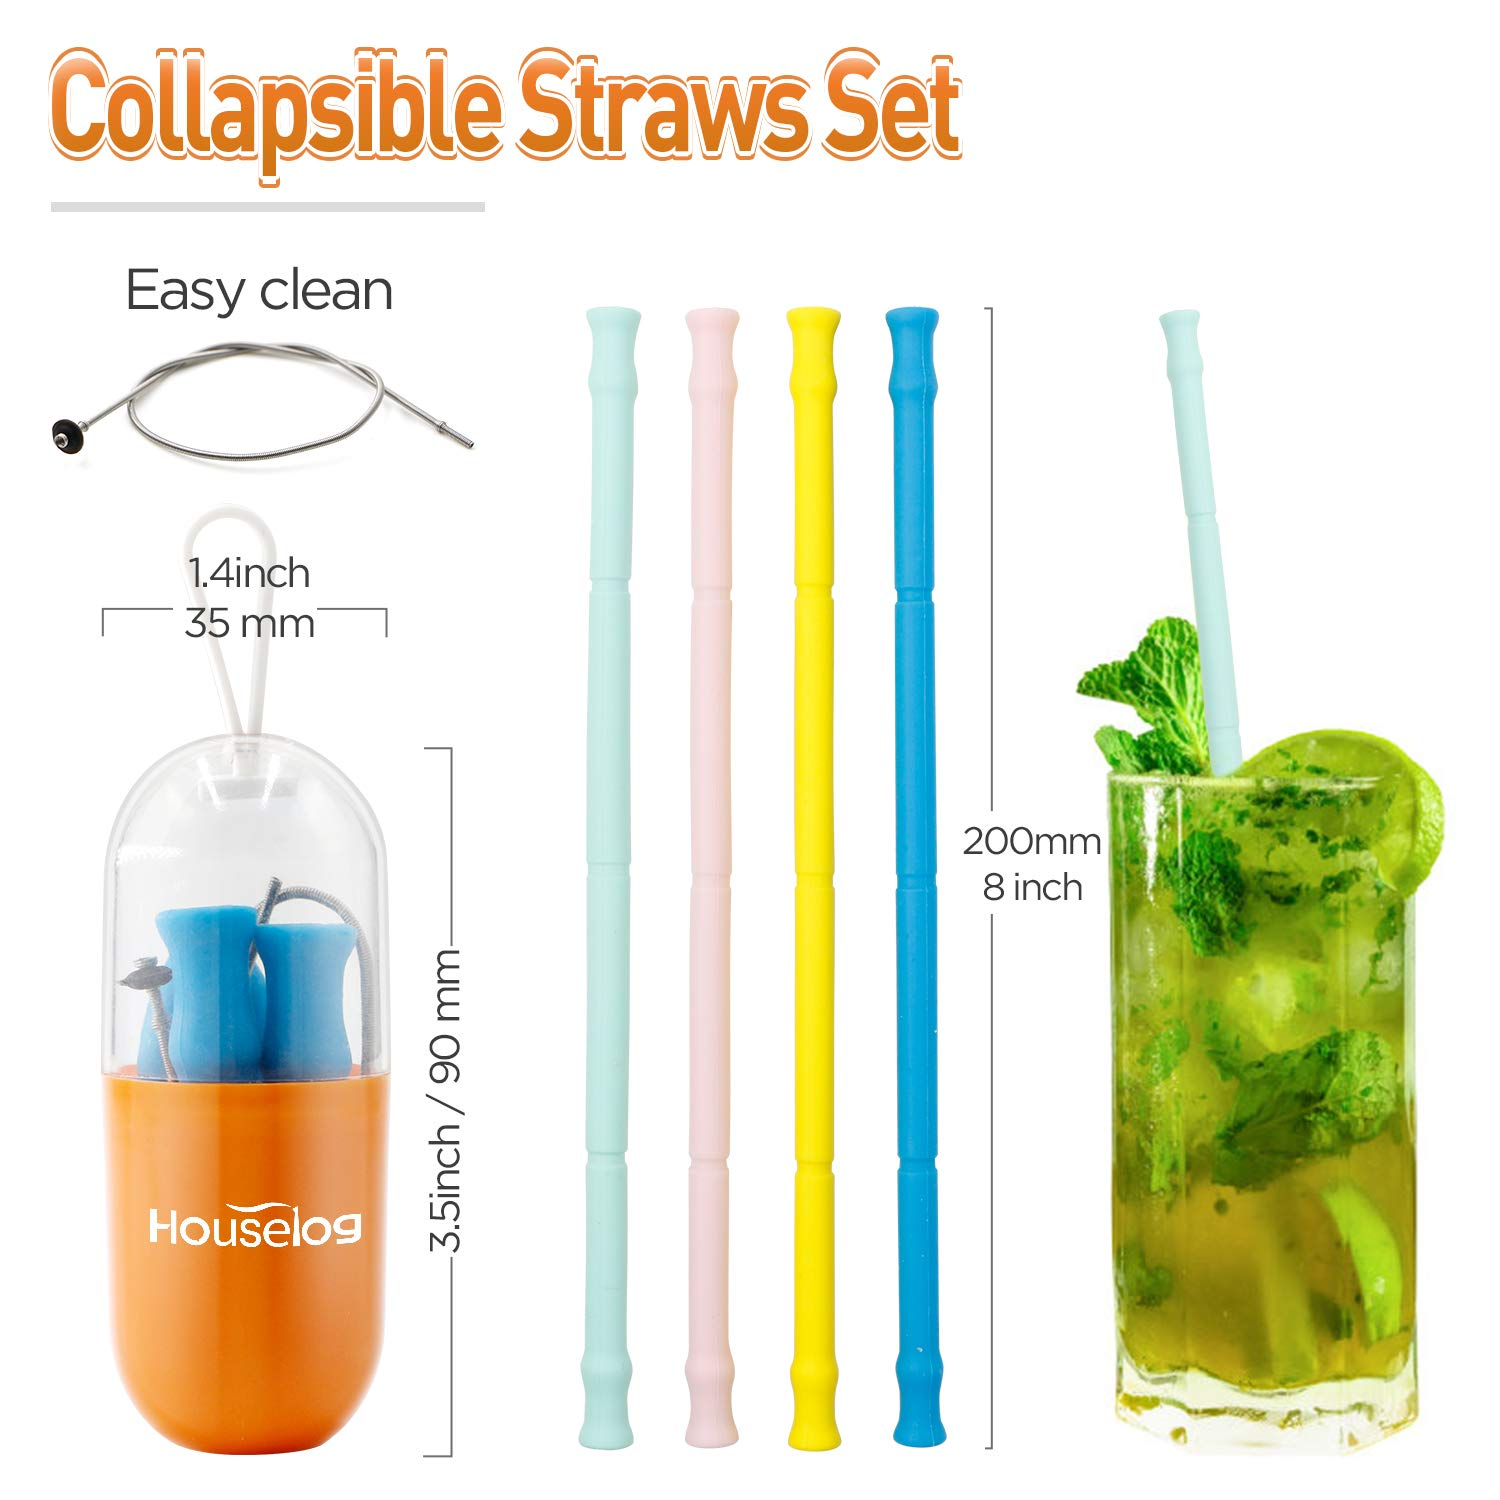 Reusable Silicone Collapsible Straws Food-Grade Drinking Straws 7.87 Inch